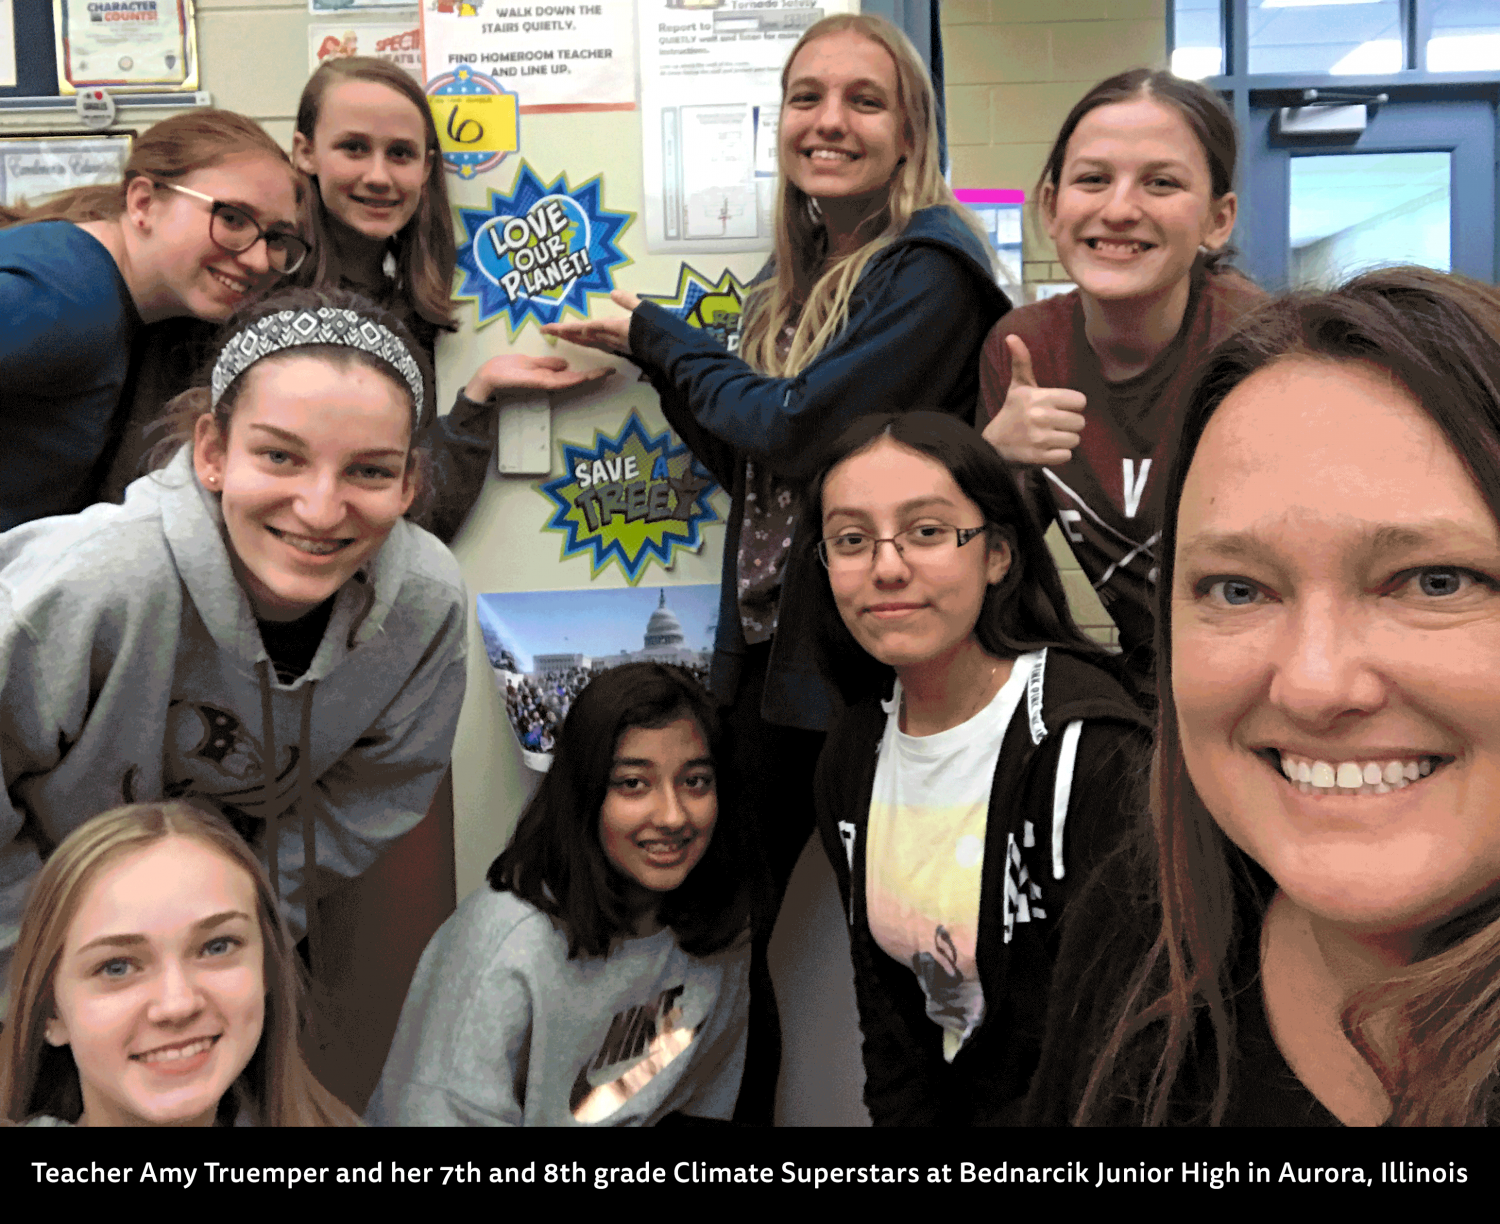 Teacher Amy Truemper and her 7th and 8th grade Climate Superstars at Bednarcik Junior High in Aurora, Illinois